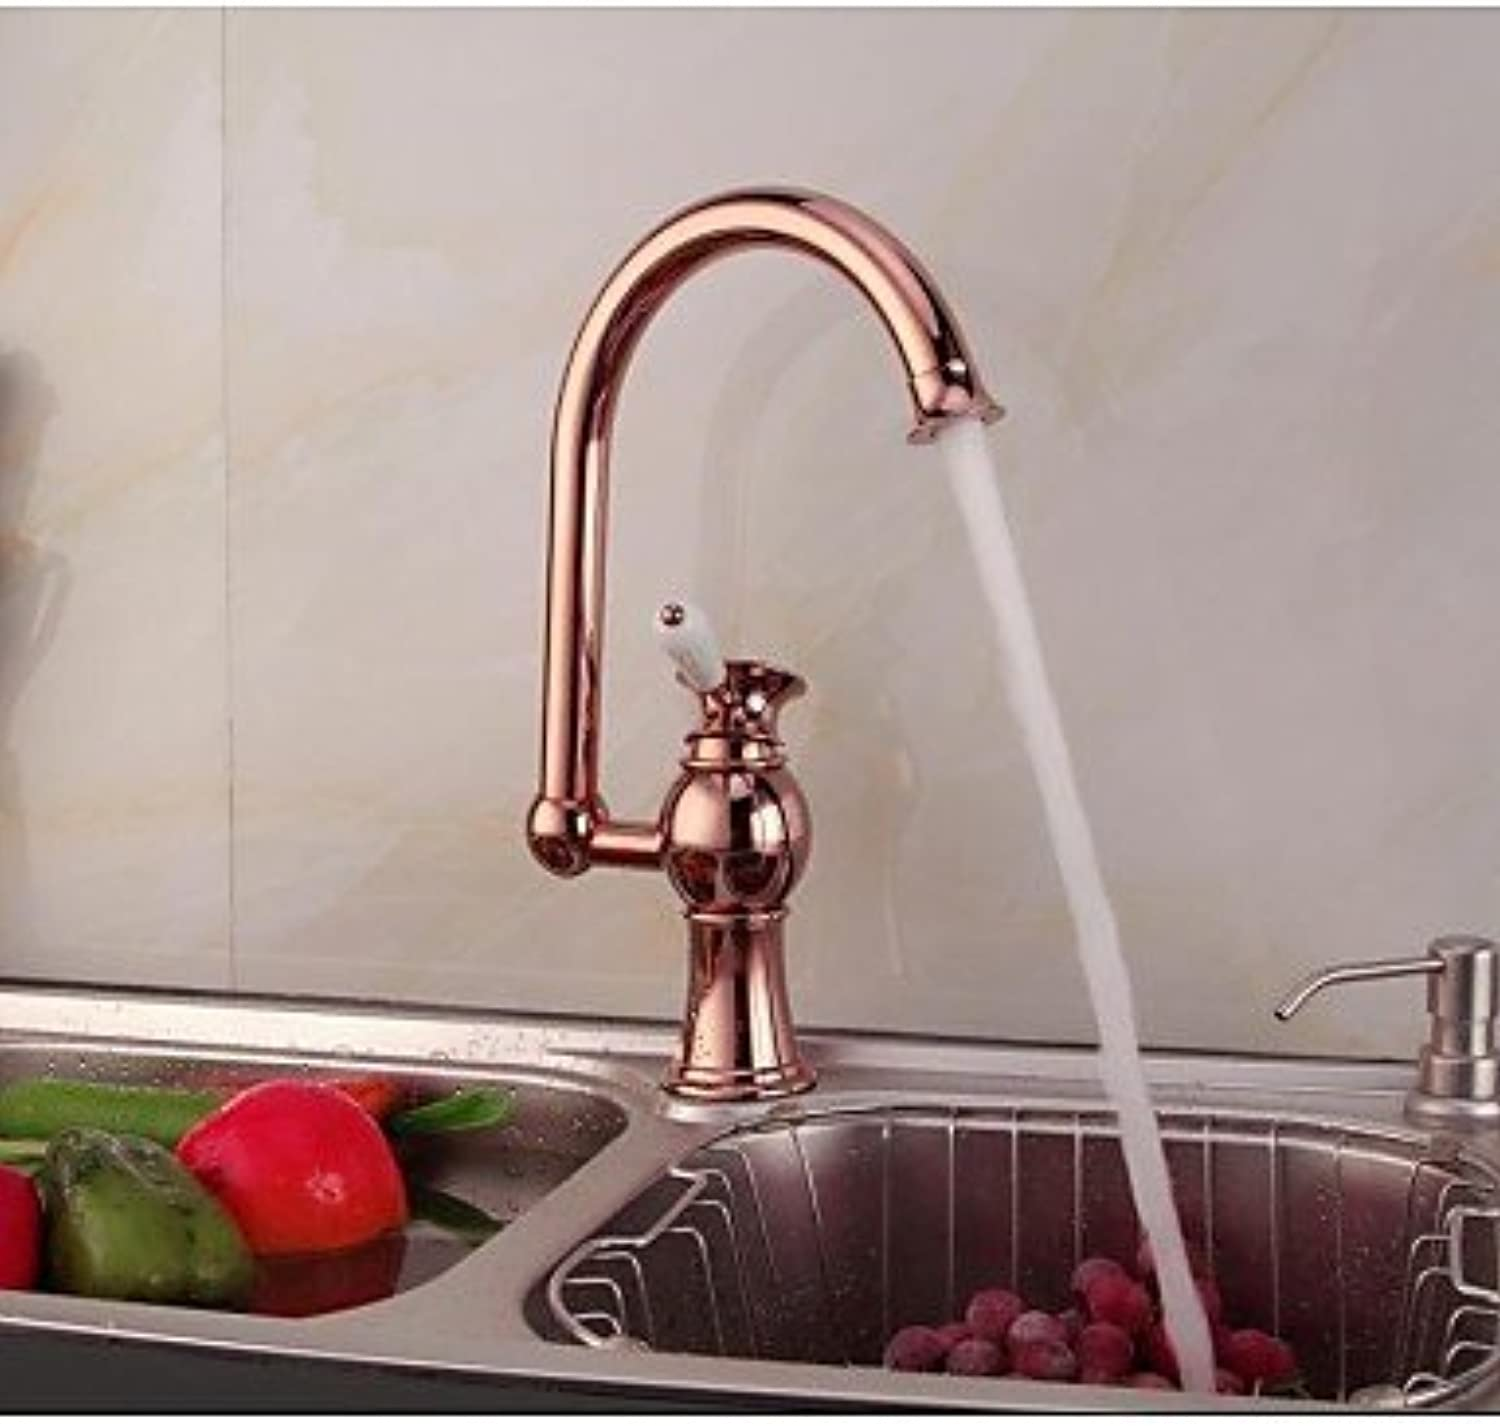 KHSKX Contemporary pink gold Finish Single Ceramic Handle Single Hole Brass Kitchen Faucet